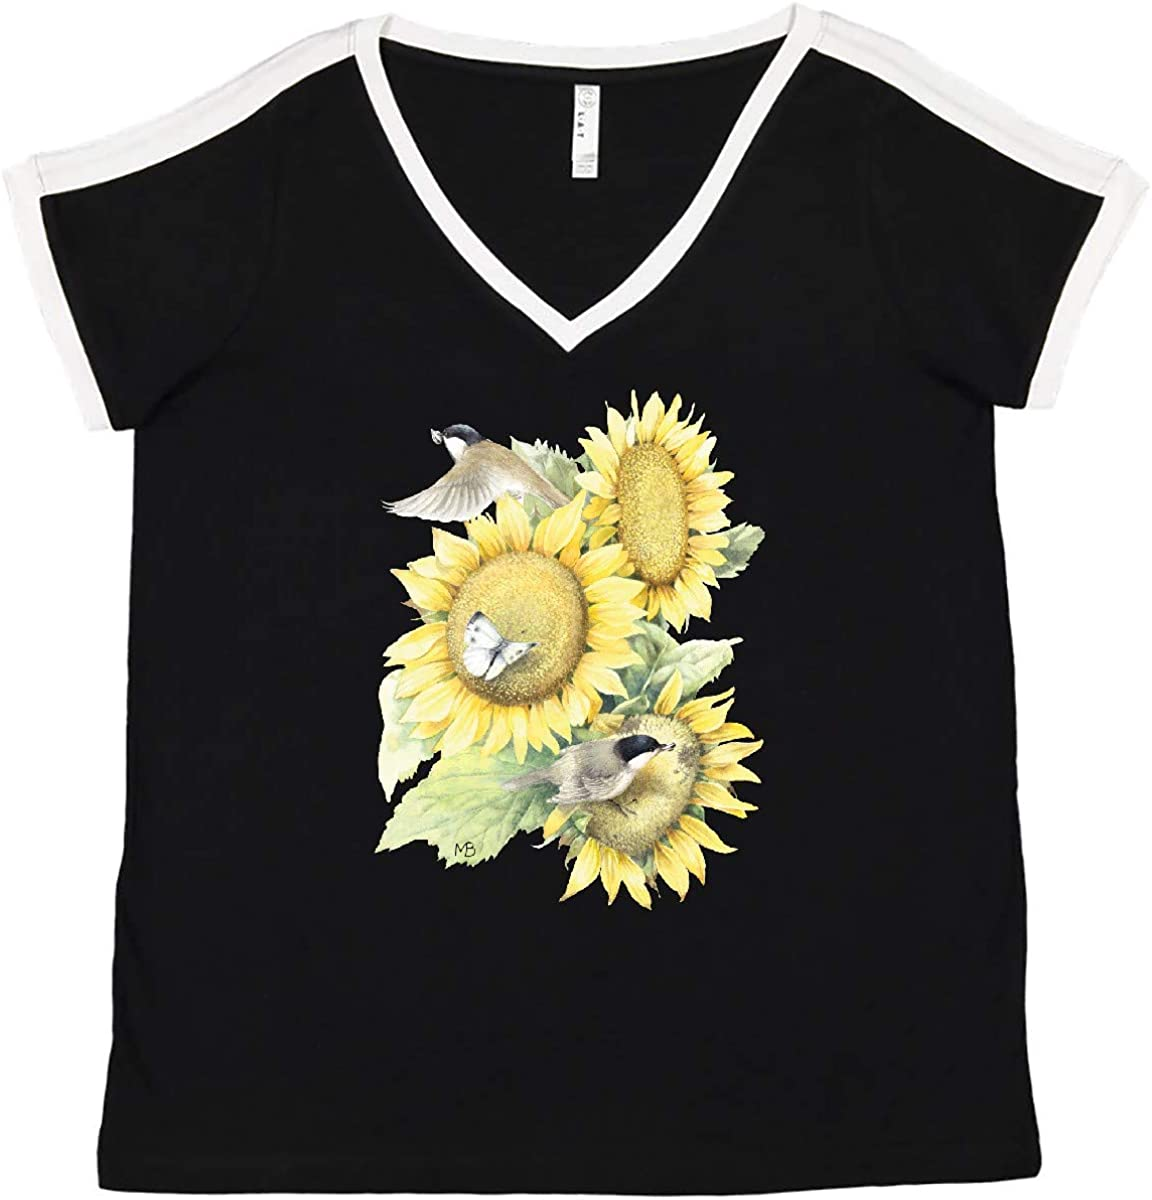 inktastic Sunflowers Trust Max 51% OFF and Birds Women's V-Neck Marjol Size - Plus